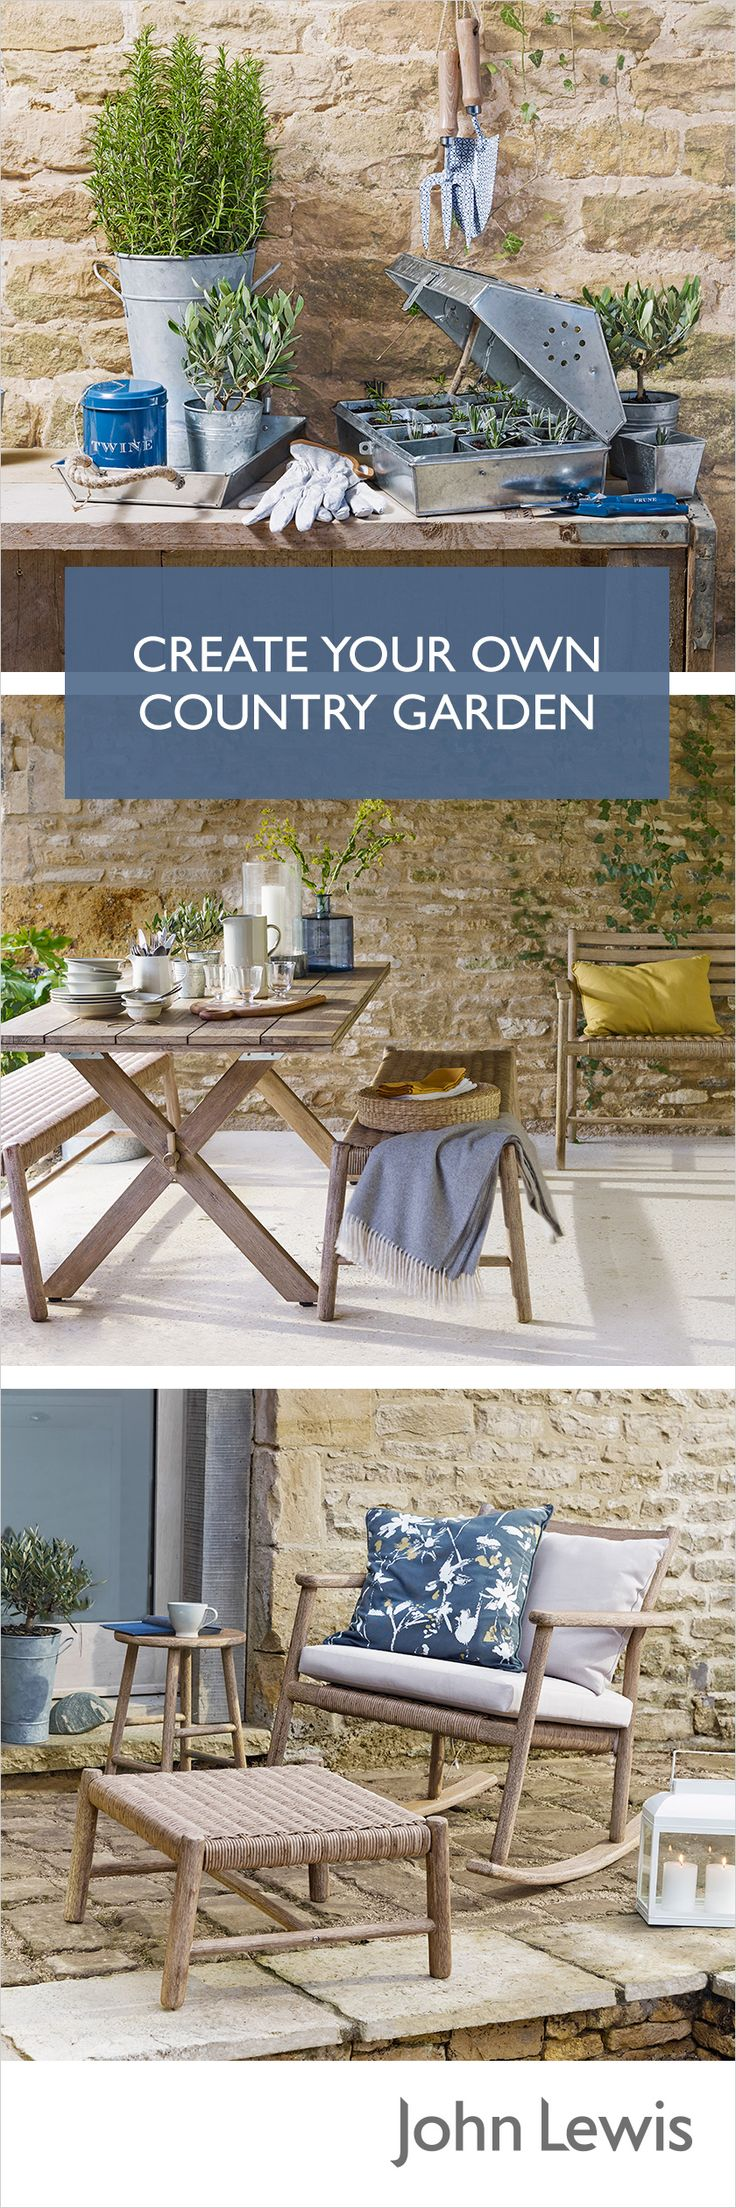 Create your own country garden, perfect for relaxing or entertaining this summer. Inspired by a classic rural look, the John Lewis Croft collection is both beautiful and considered. Invest in charming but durable wooden furniture suited to all weather, and pair with a neutral colour palette to get the country look.